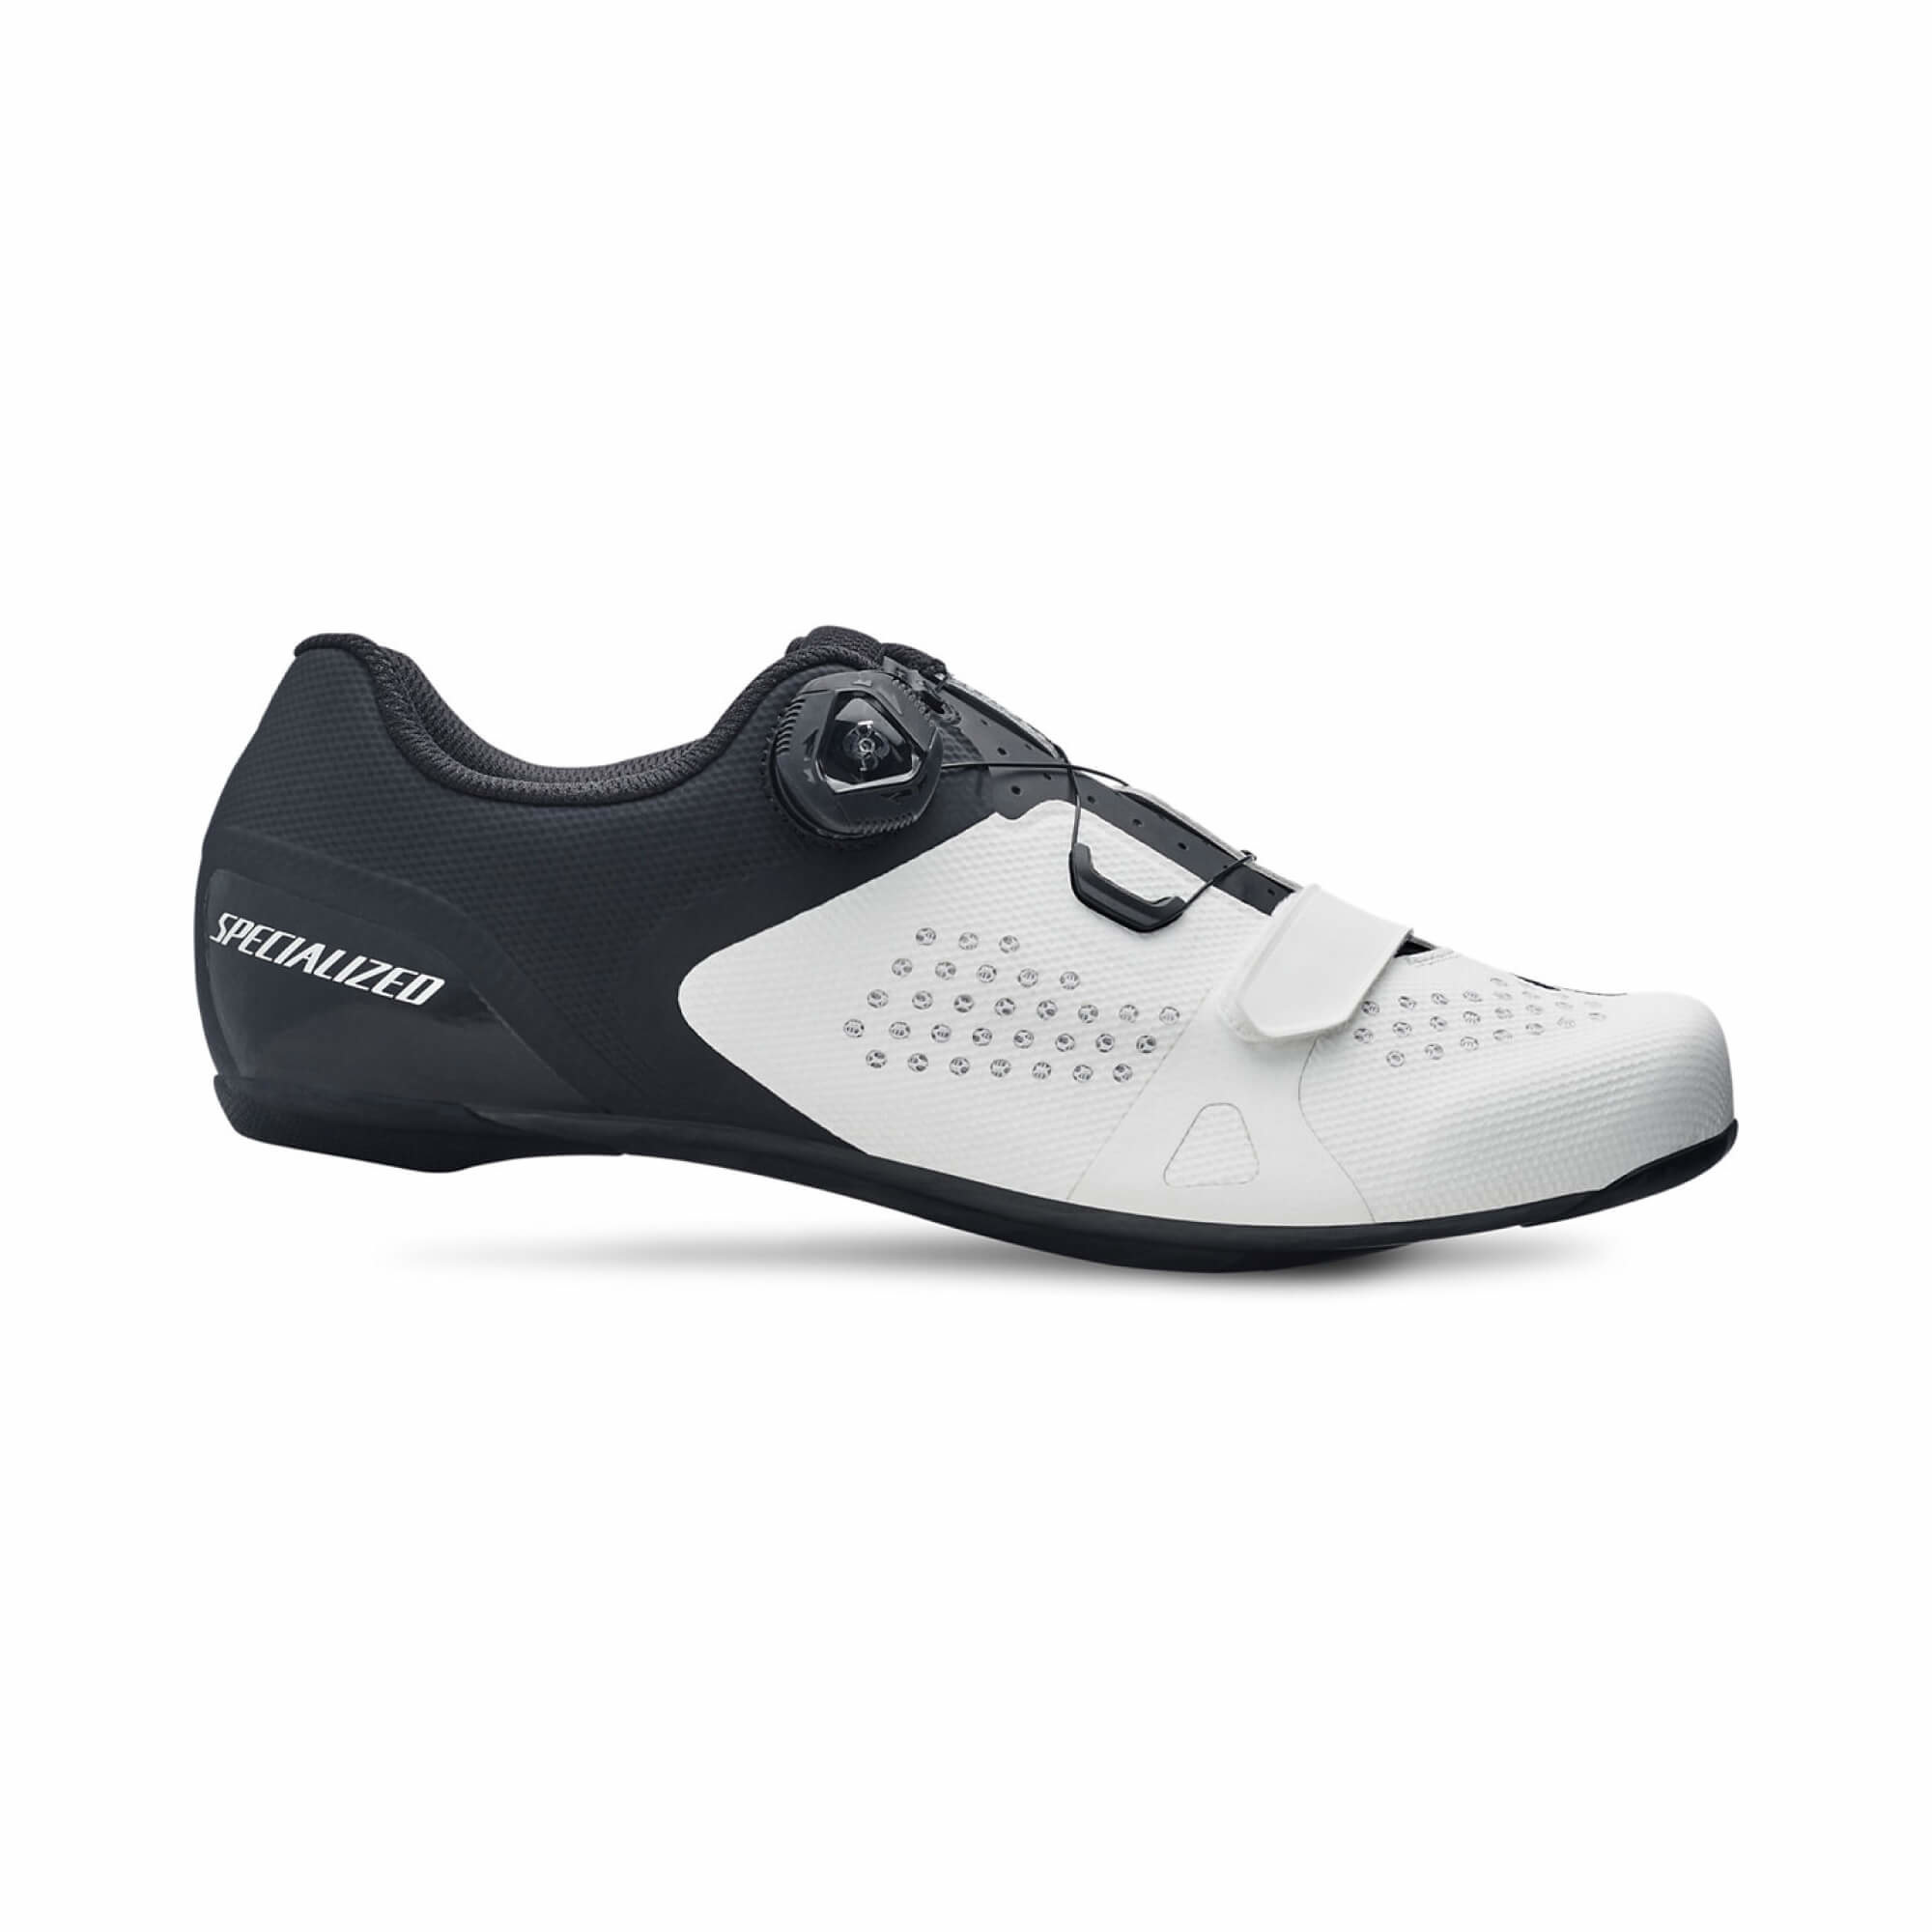 Torch 3.0 Road Shoe-11